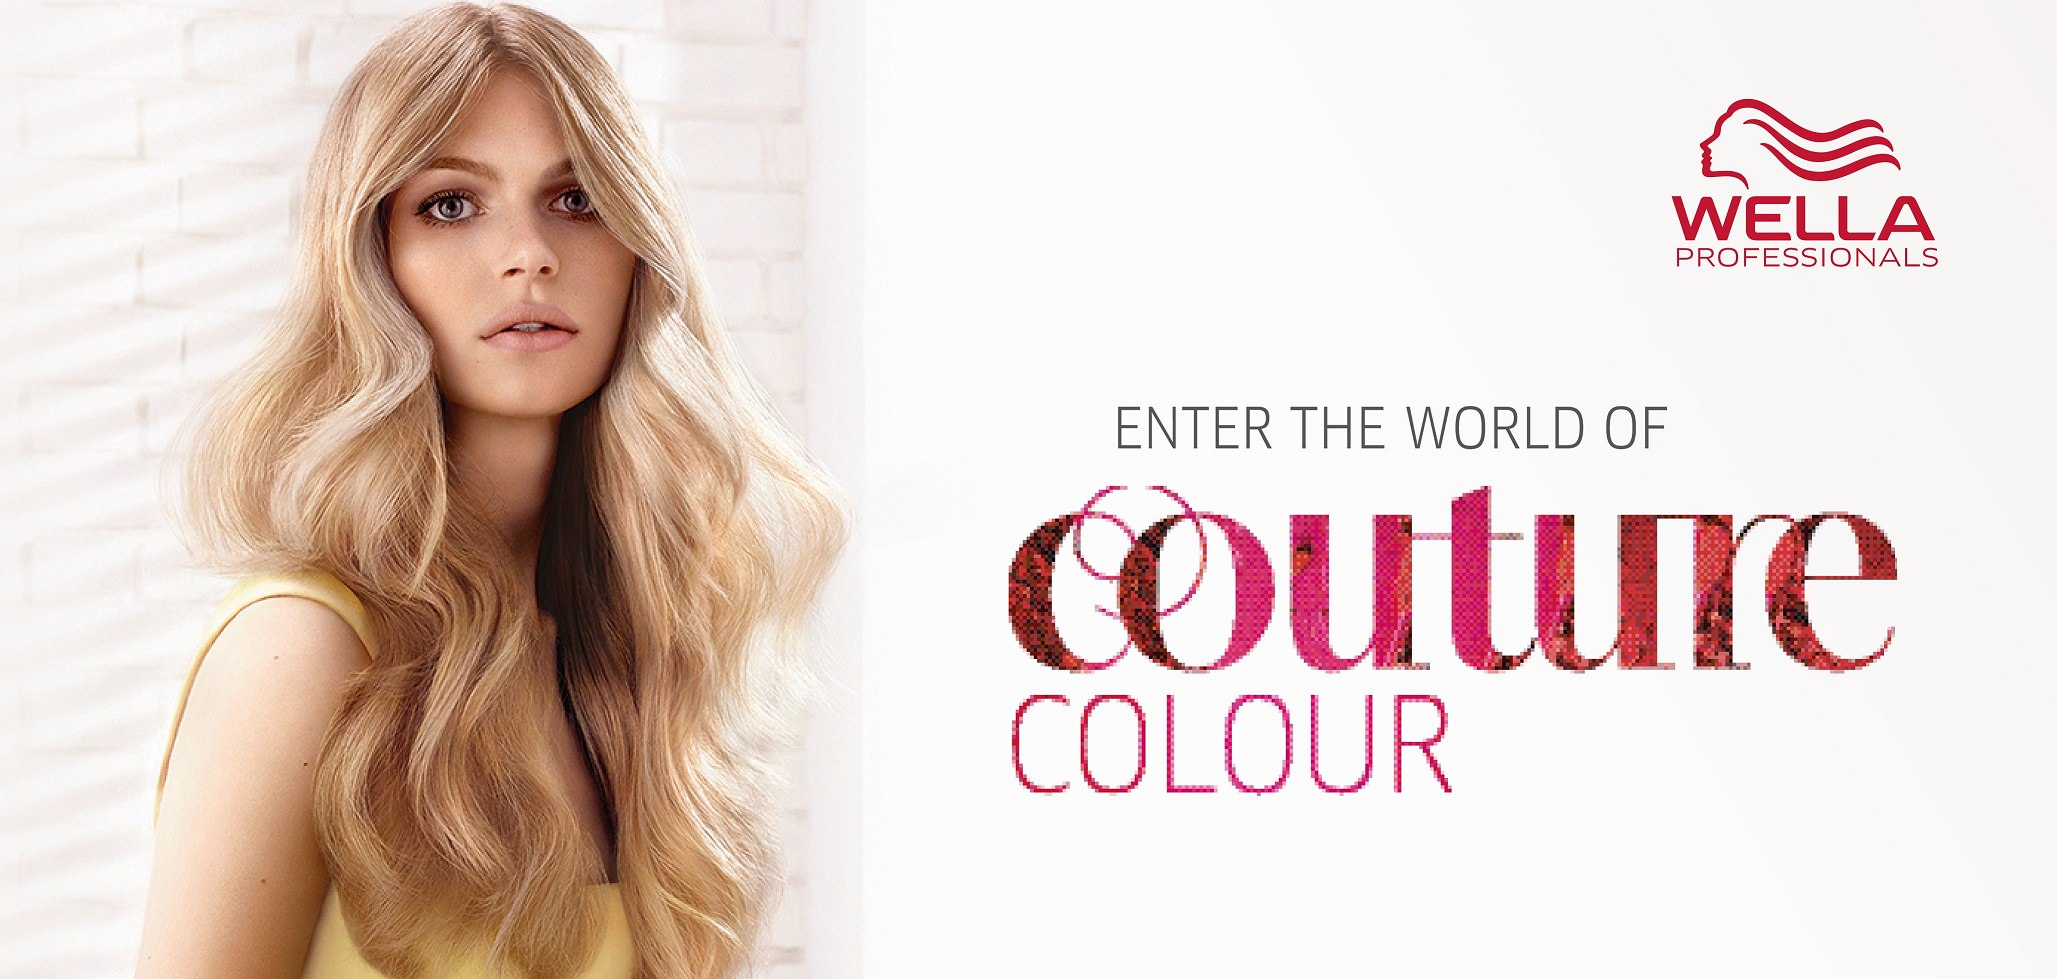 Couture-Colour-wella